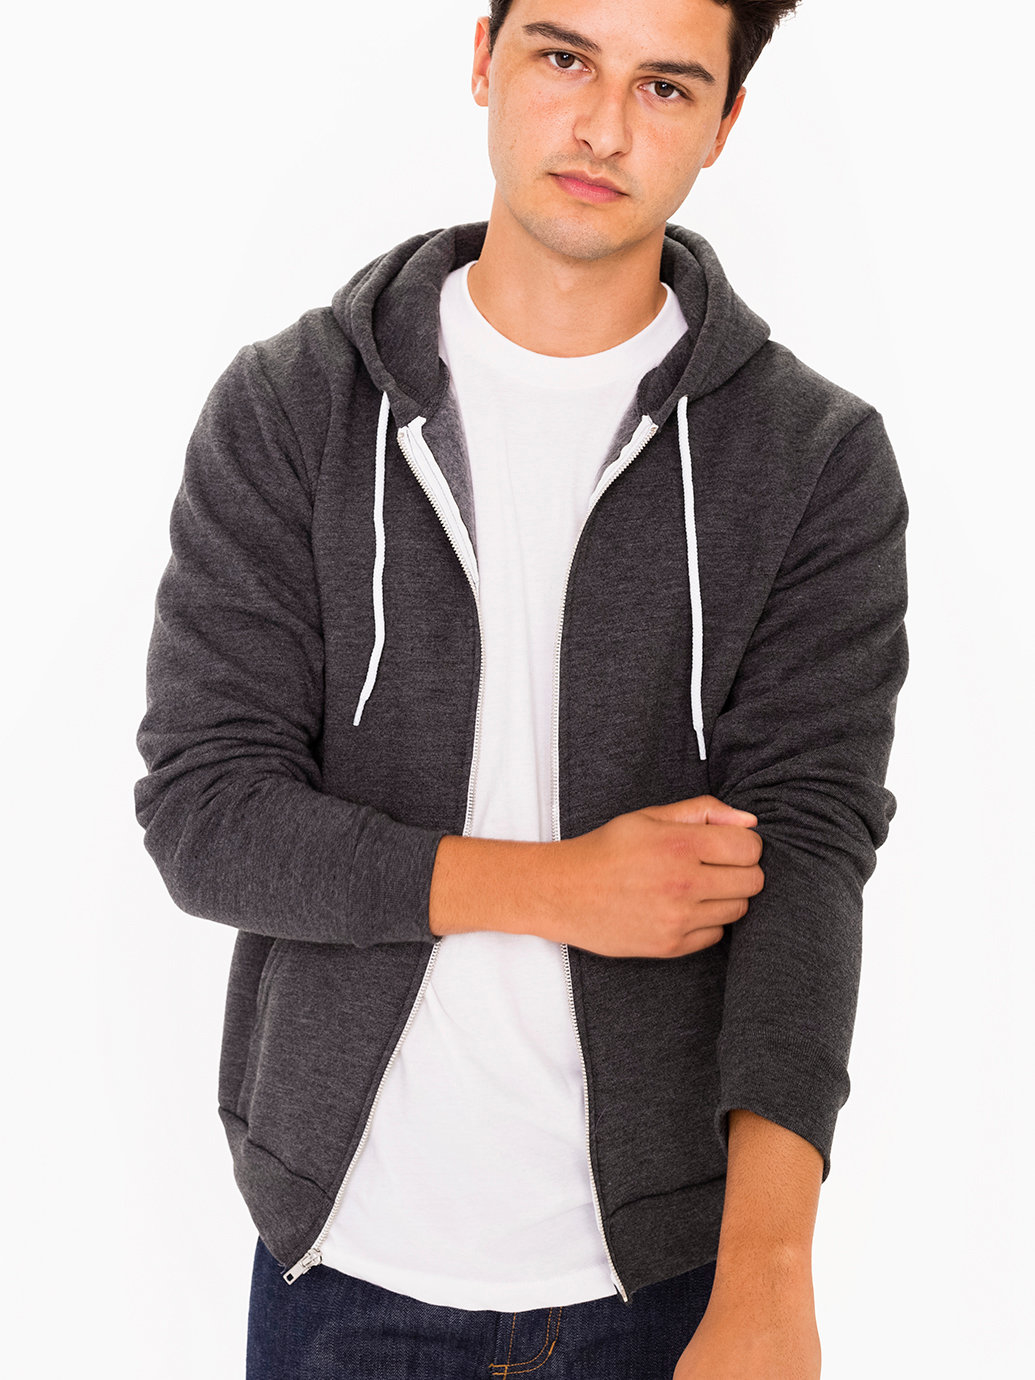 american apparel flex fleece jacket blook